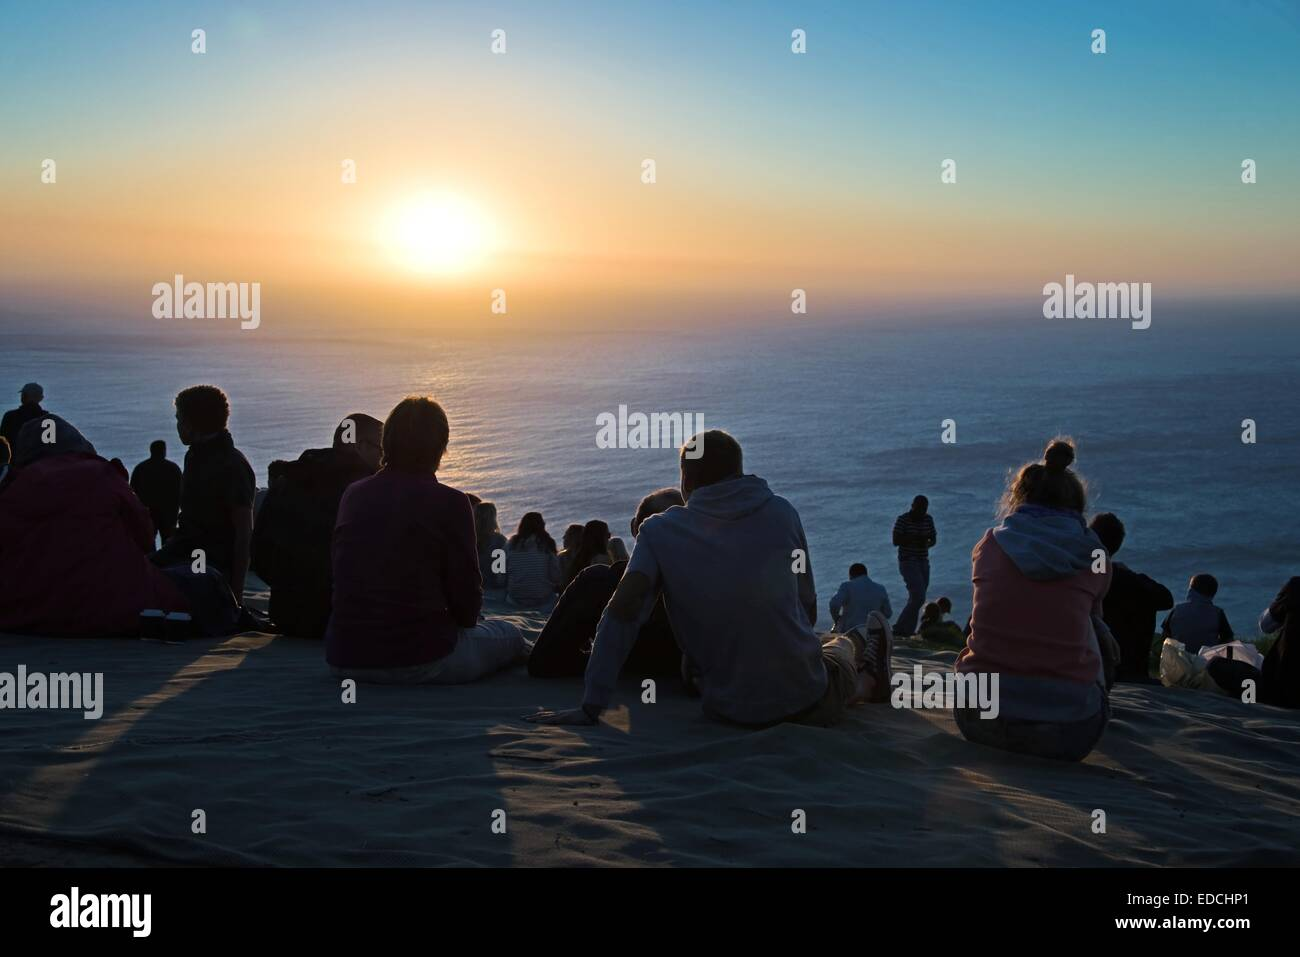 People enjoying the sunset at Signal Hill, a hill famous for its view on Cape Town city. - Stock Image